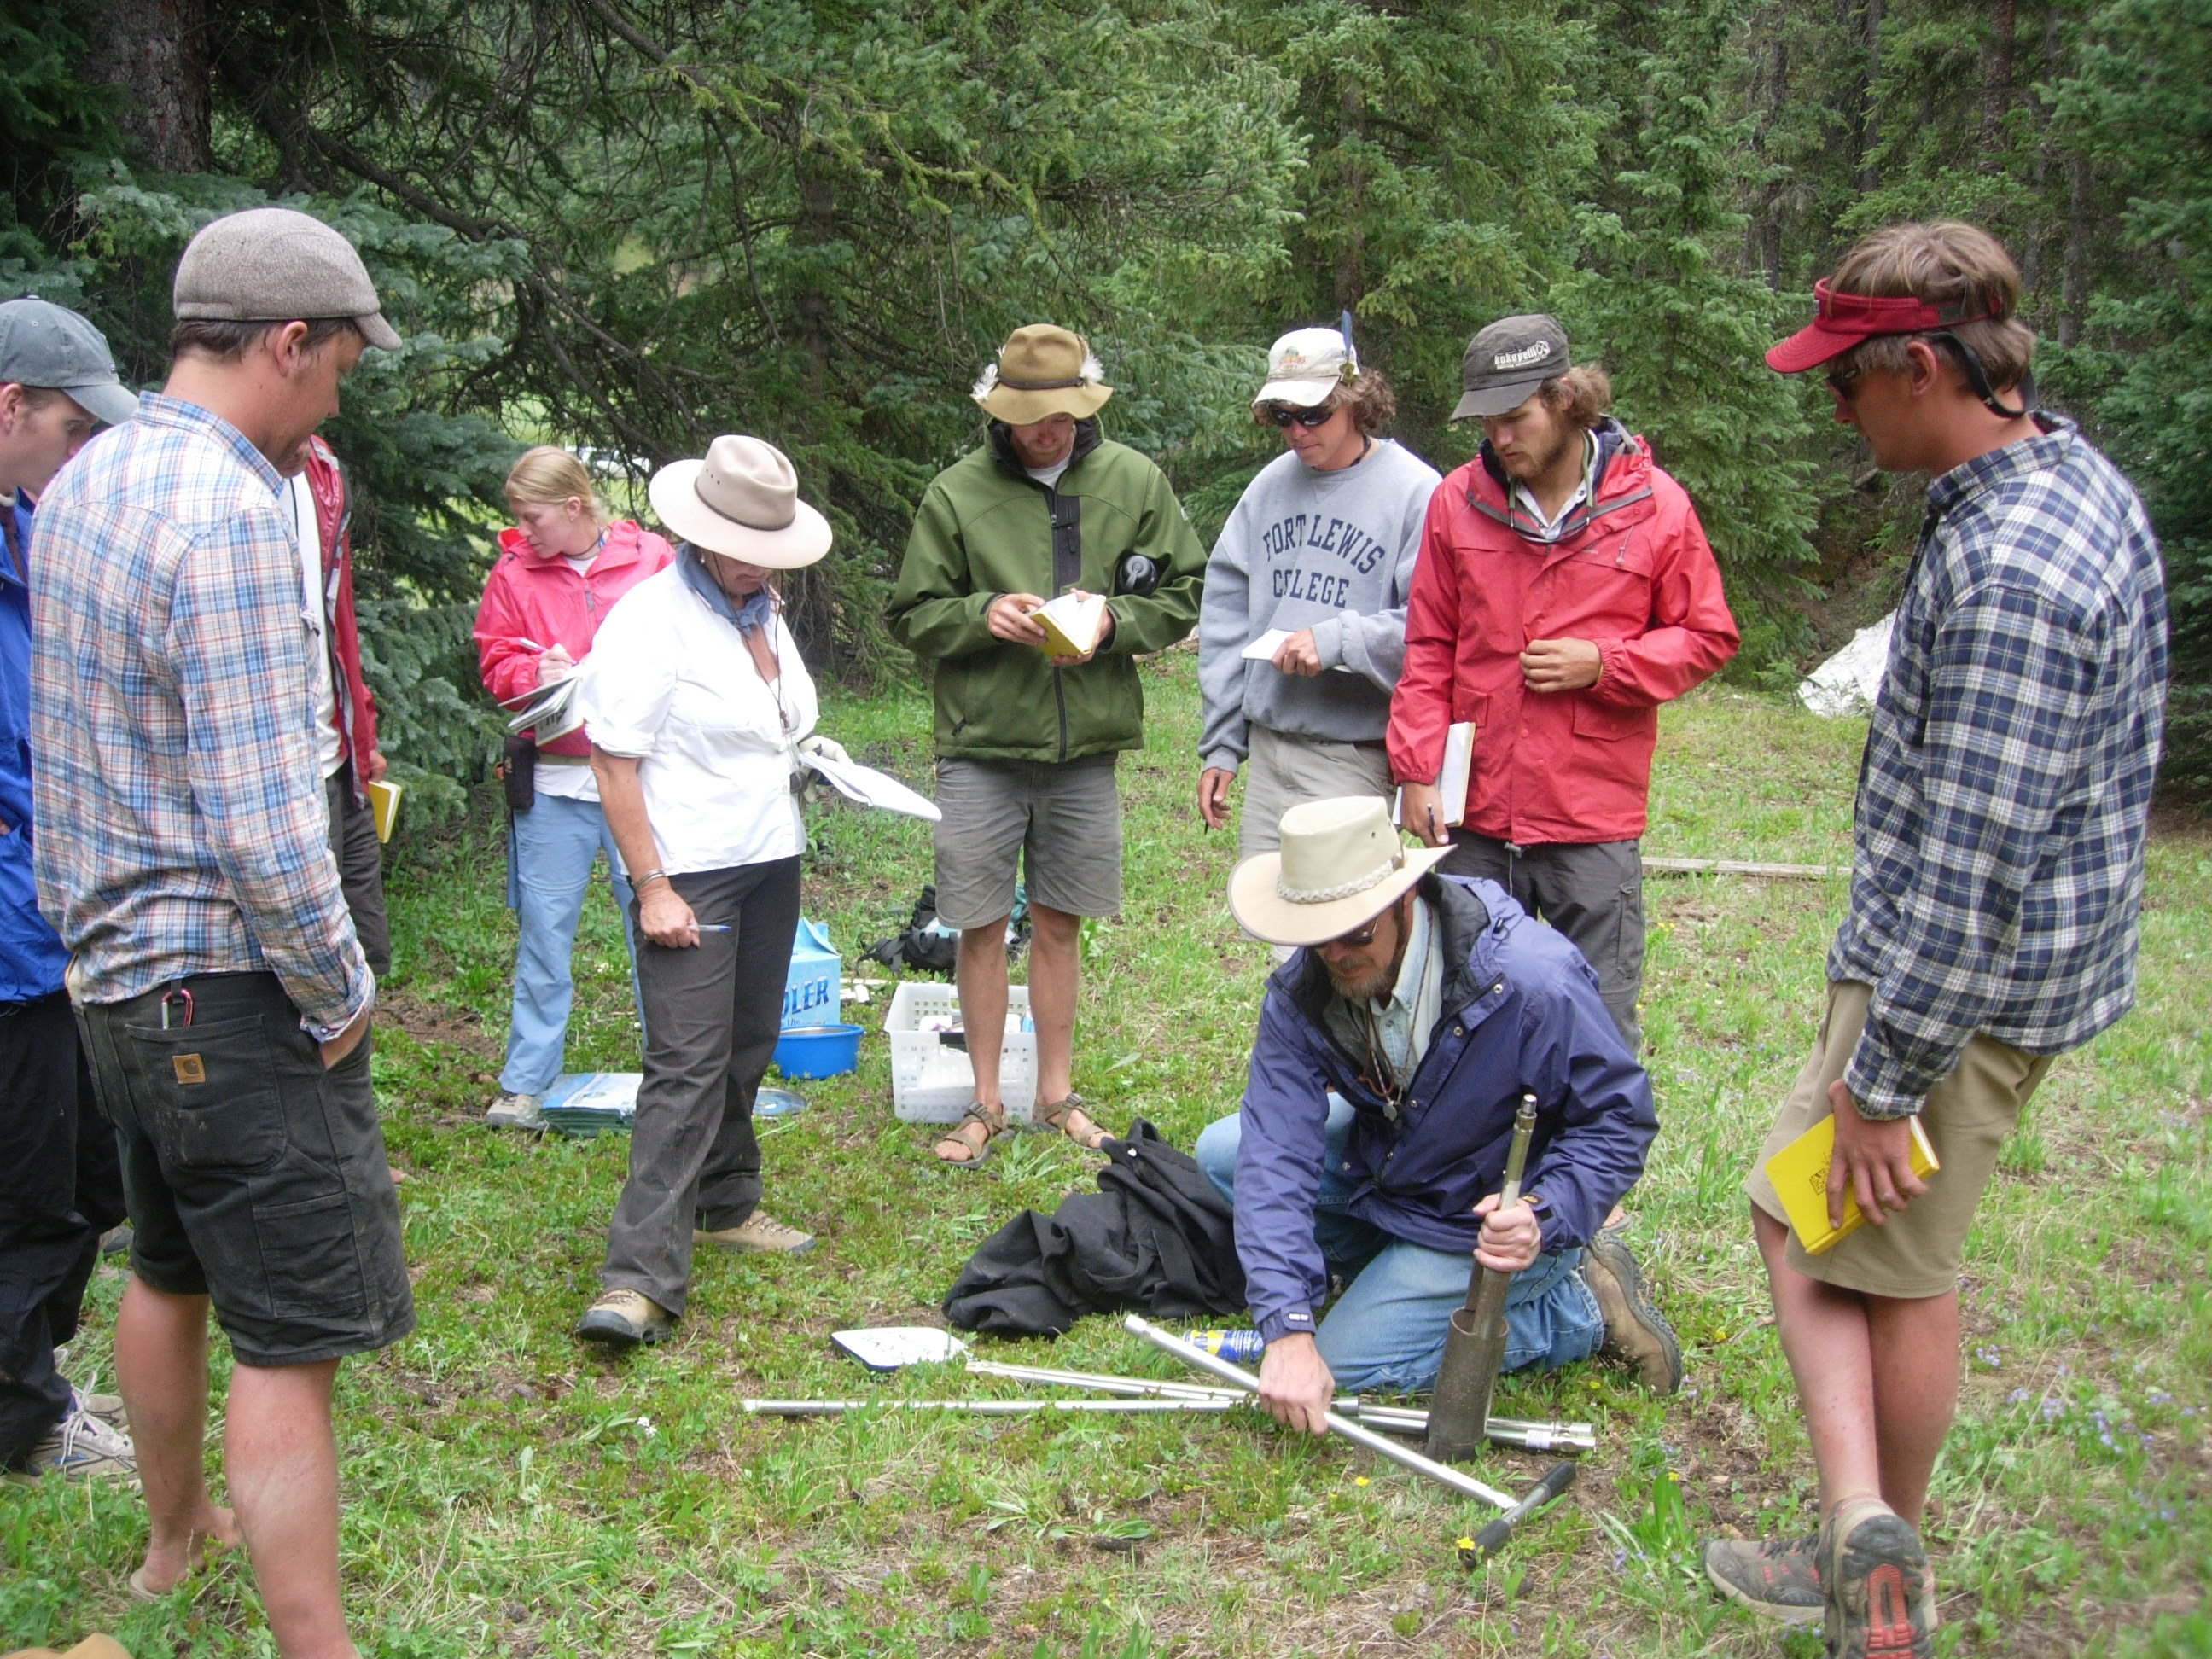 Field Research in an Undergraduate Field Camp